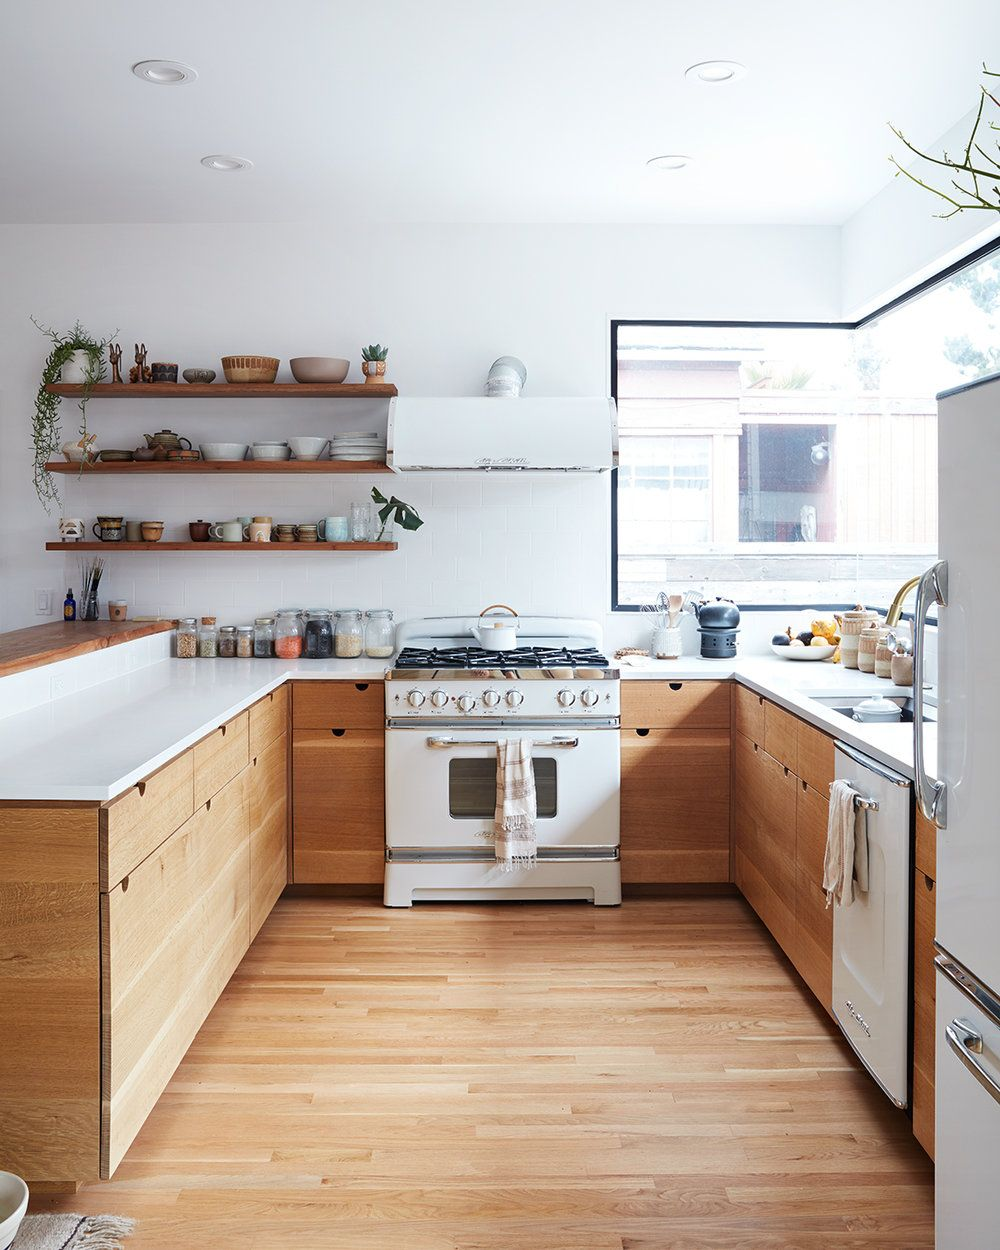 Kitchens Without Upper Cabinets Should You Go Without Kitchens Without Upper Cabinets White Kitchen Appliances Kitchen Renovation